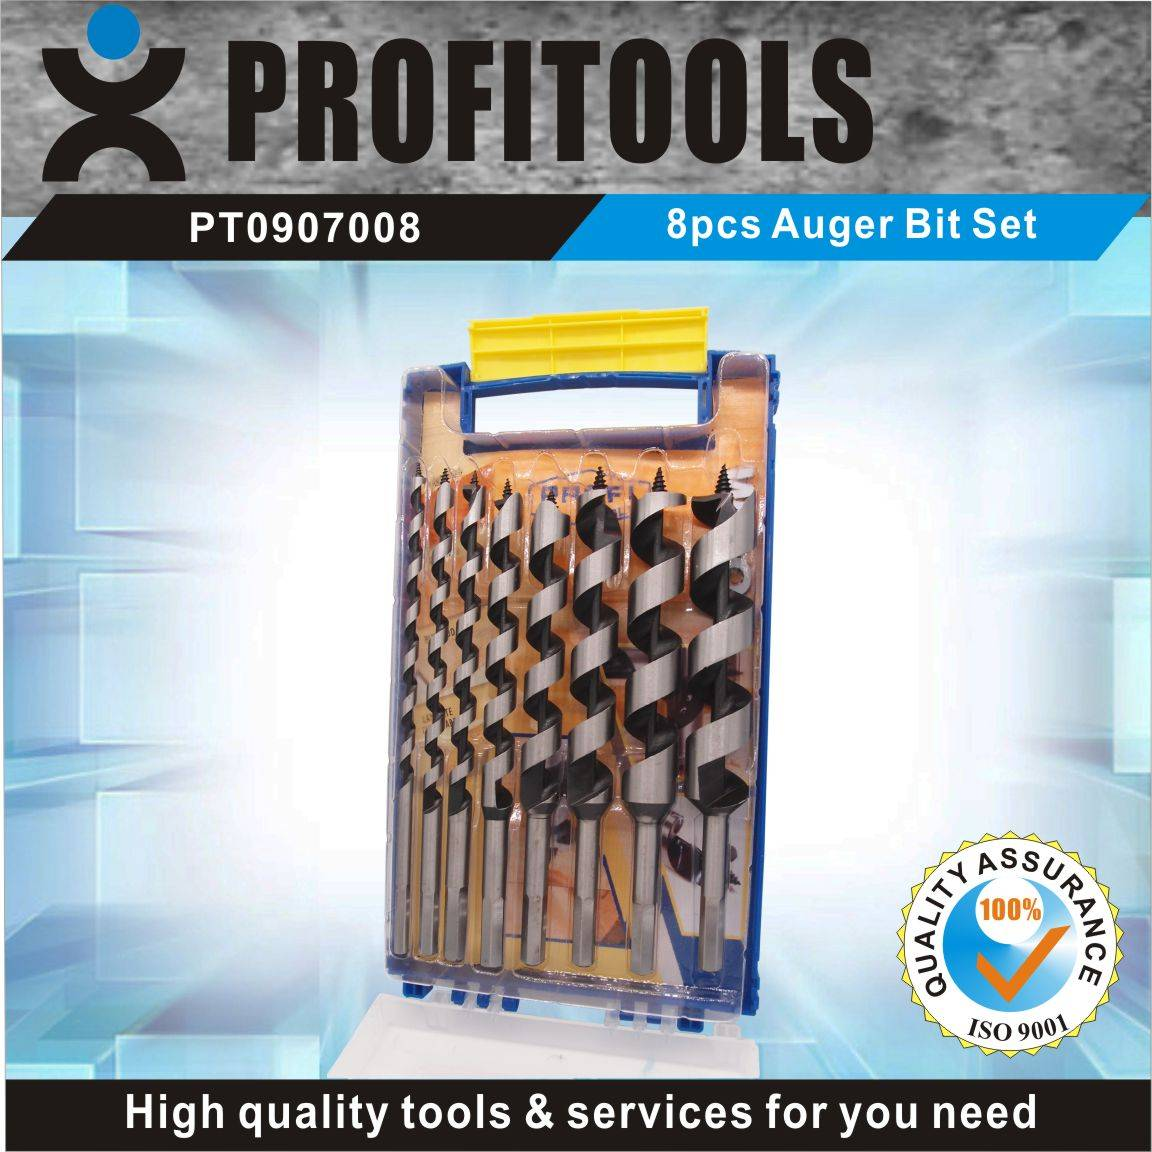 8pcs Professional Auger Bit Set for Wood Working